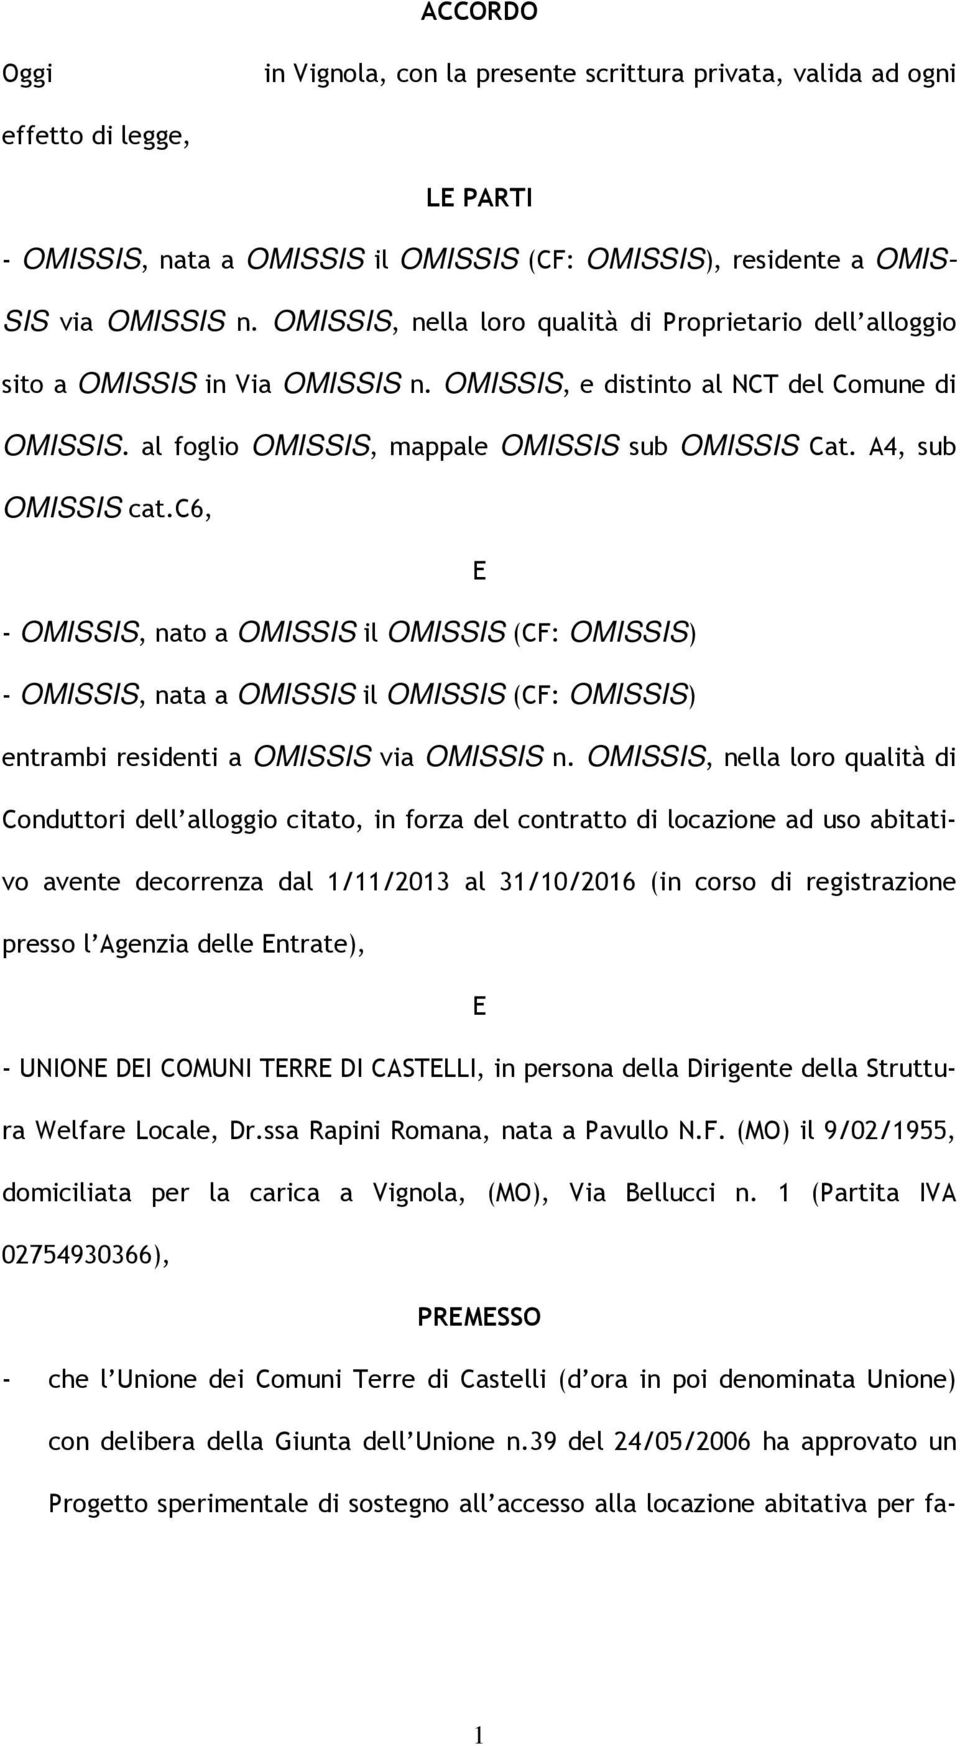 A4, sub OMISSIS cat.c6, E - OMISSIS, nato a OMISSIS il OMISSIS (CF: OMISSIS) - OMISSIS, nata a OMISSIS il OMISSIS (CF: OMISSIS) entrambi residenti a OMISSIS via OMISSIS n.